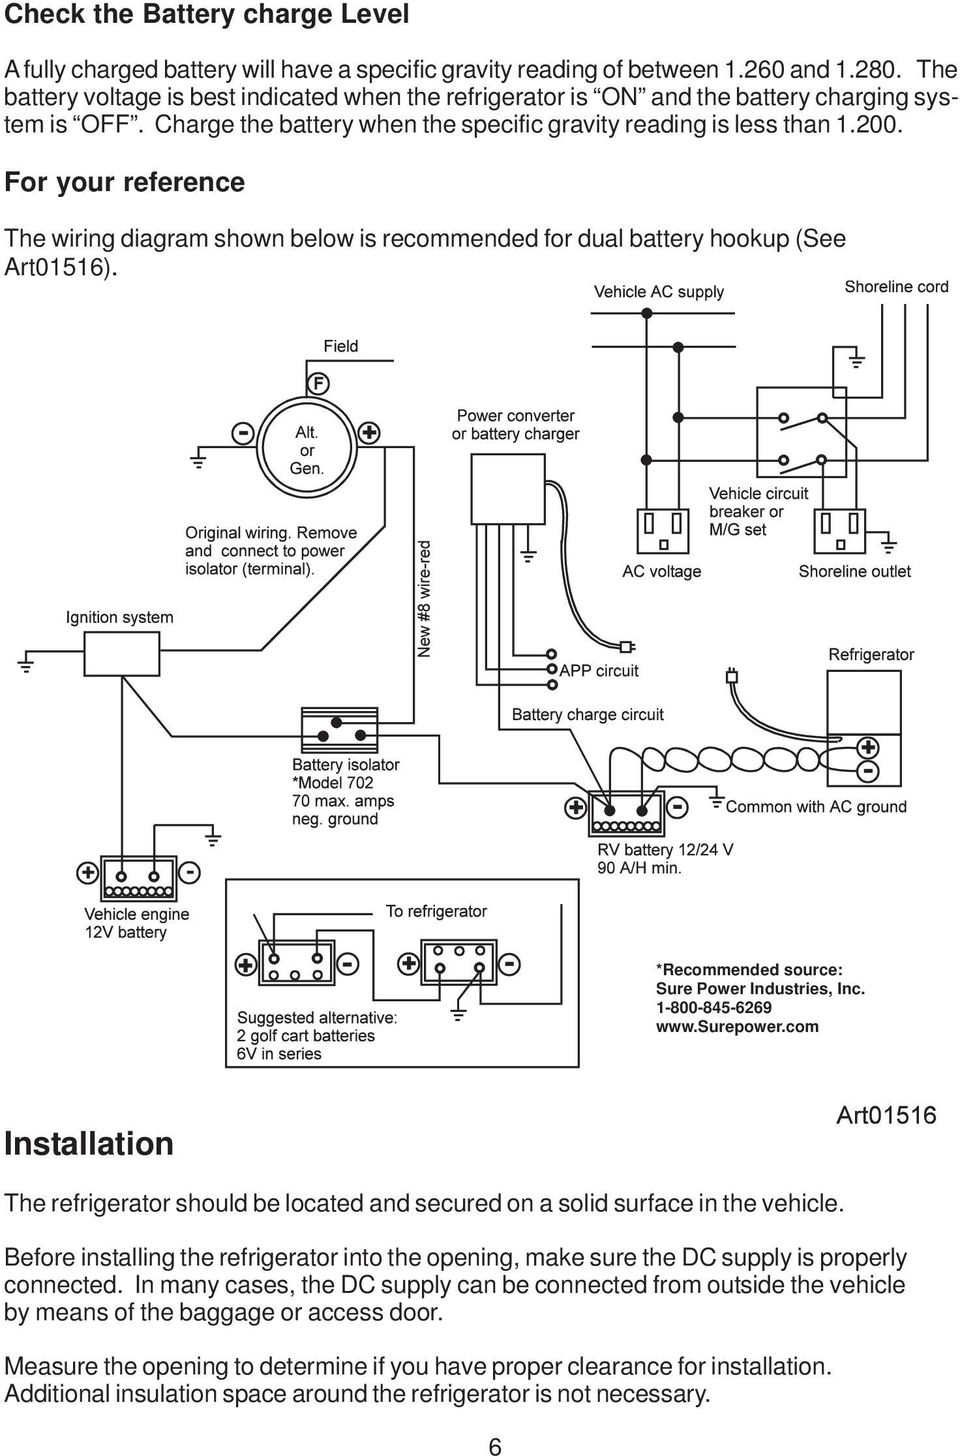 medium resolution of for your reference the wiring diagram shown below is recommended for dual battery hookup see